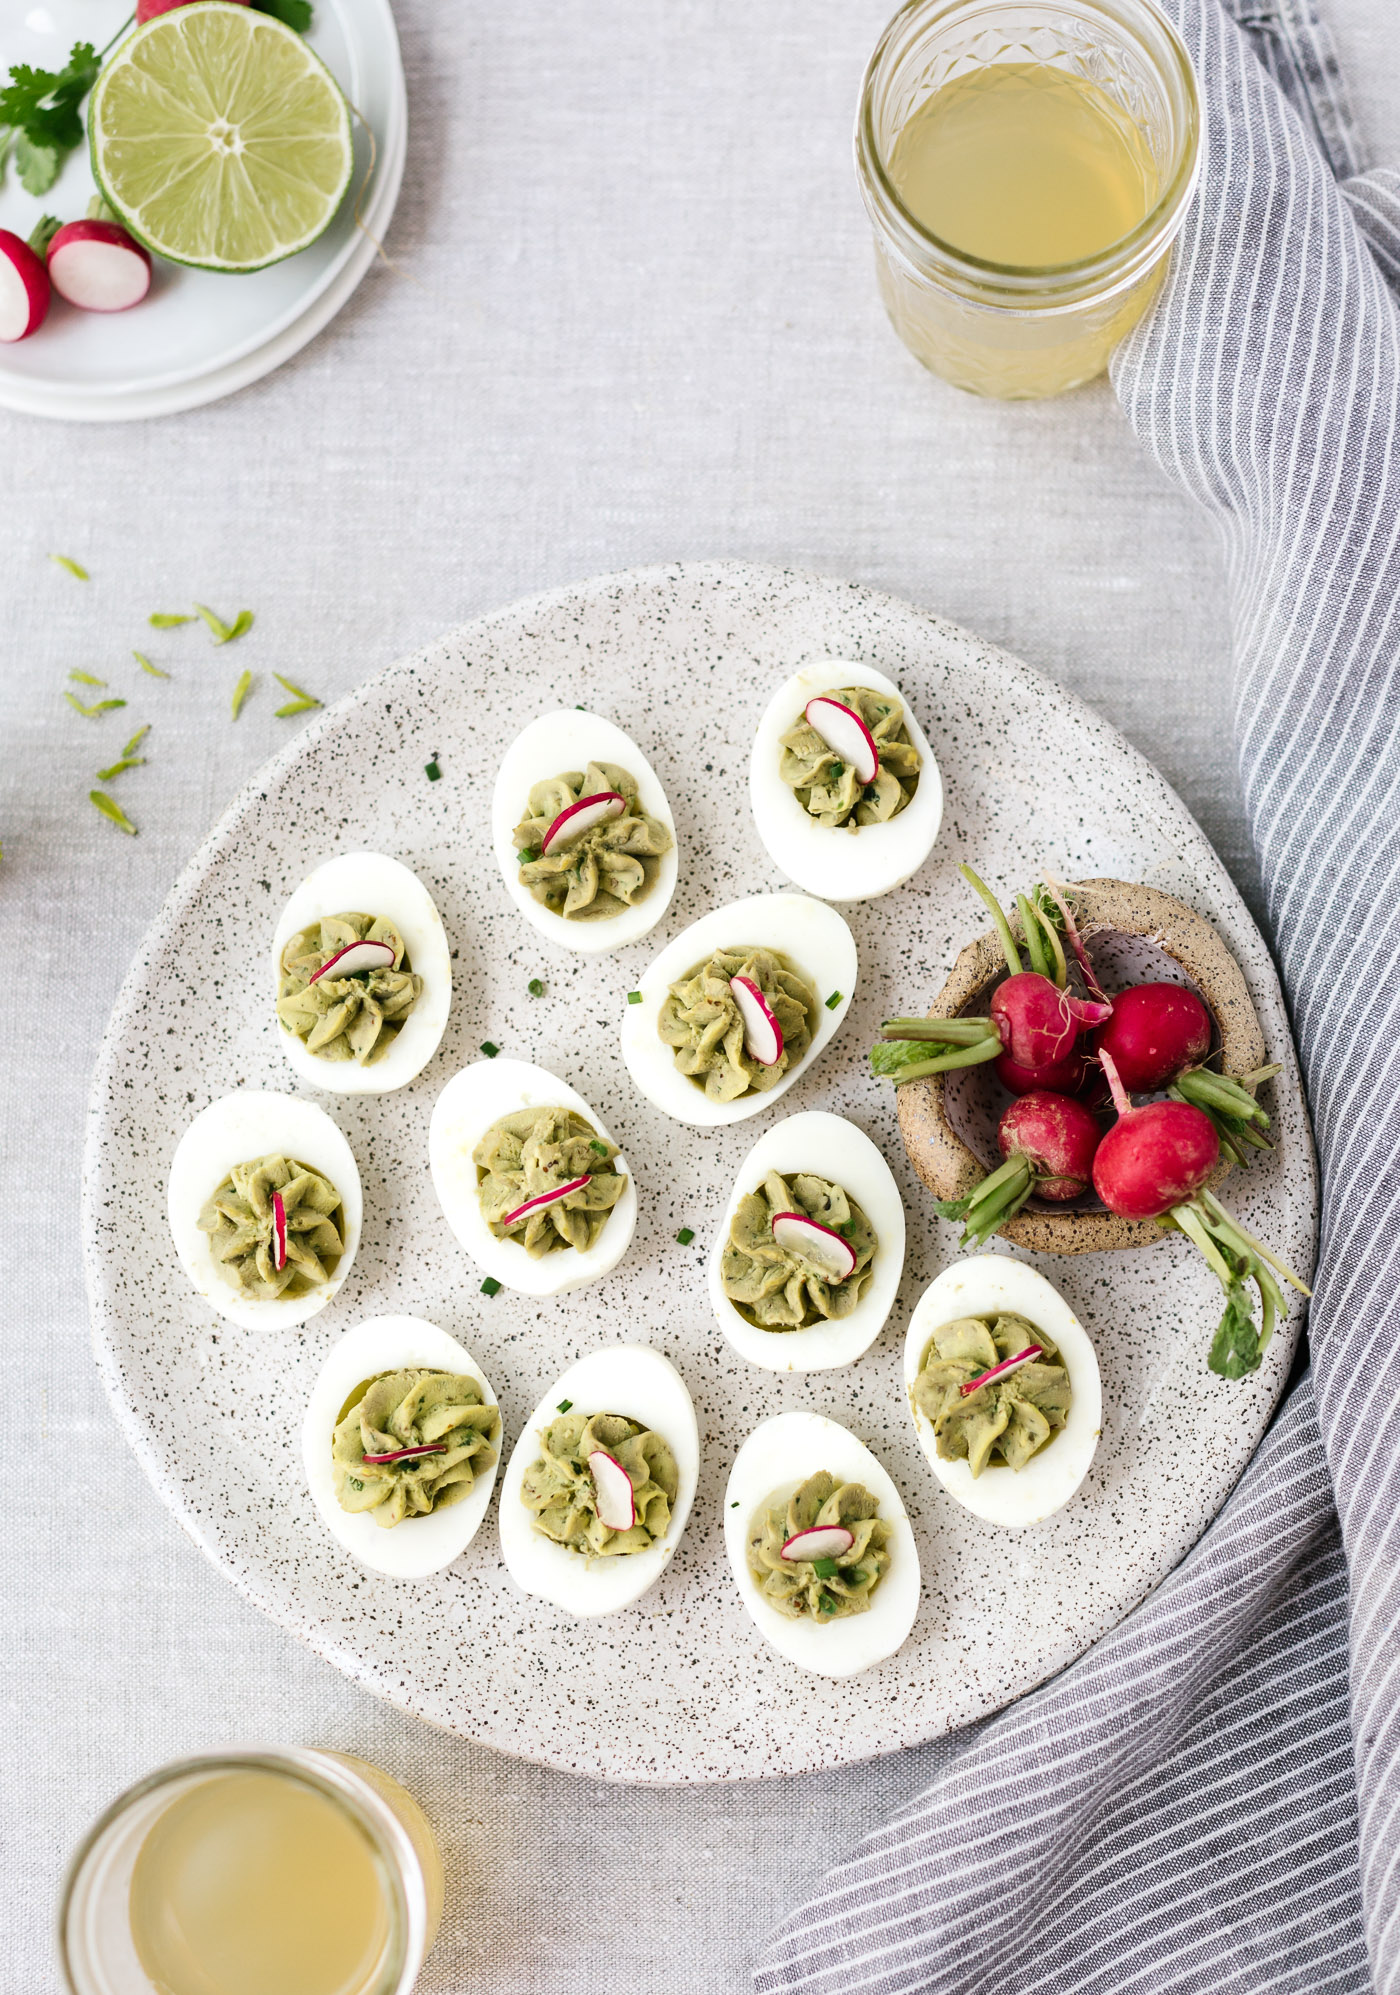 Avocado Deviled Eggs garnished with radishes photographed from the top view.